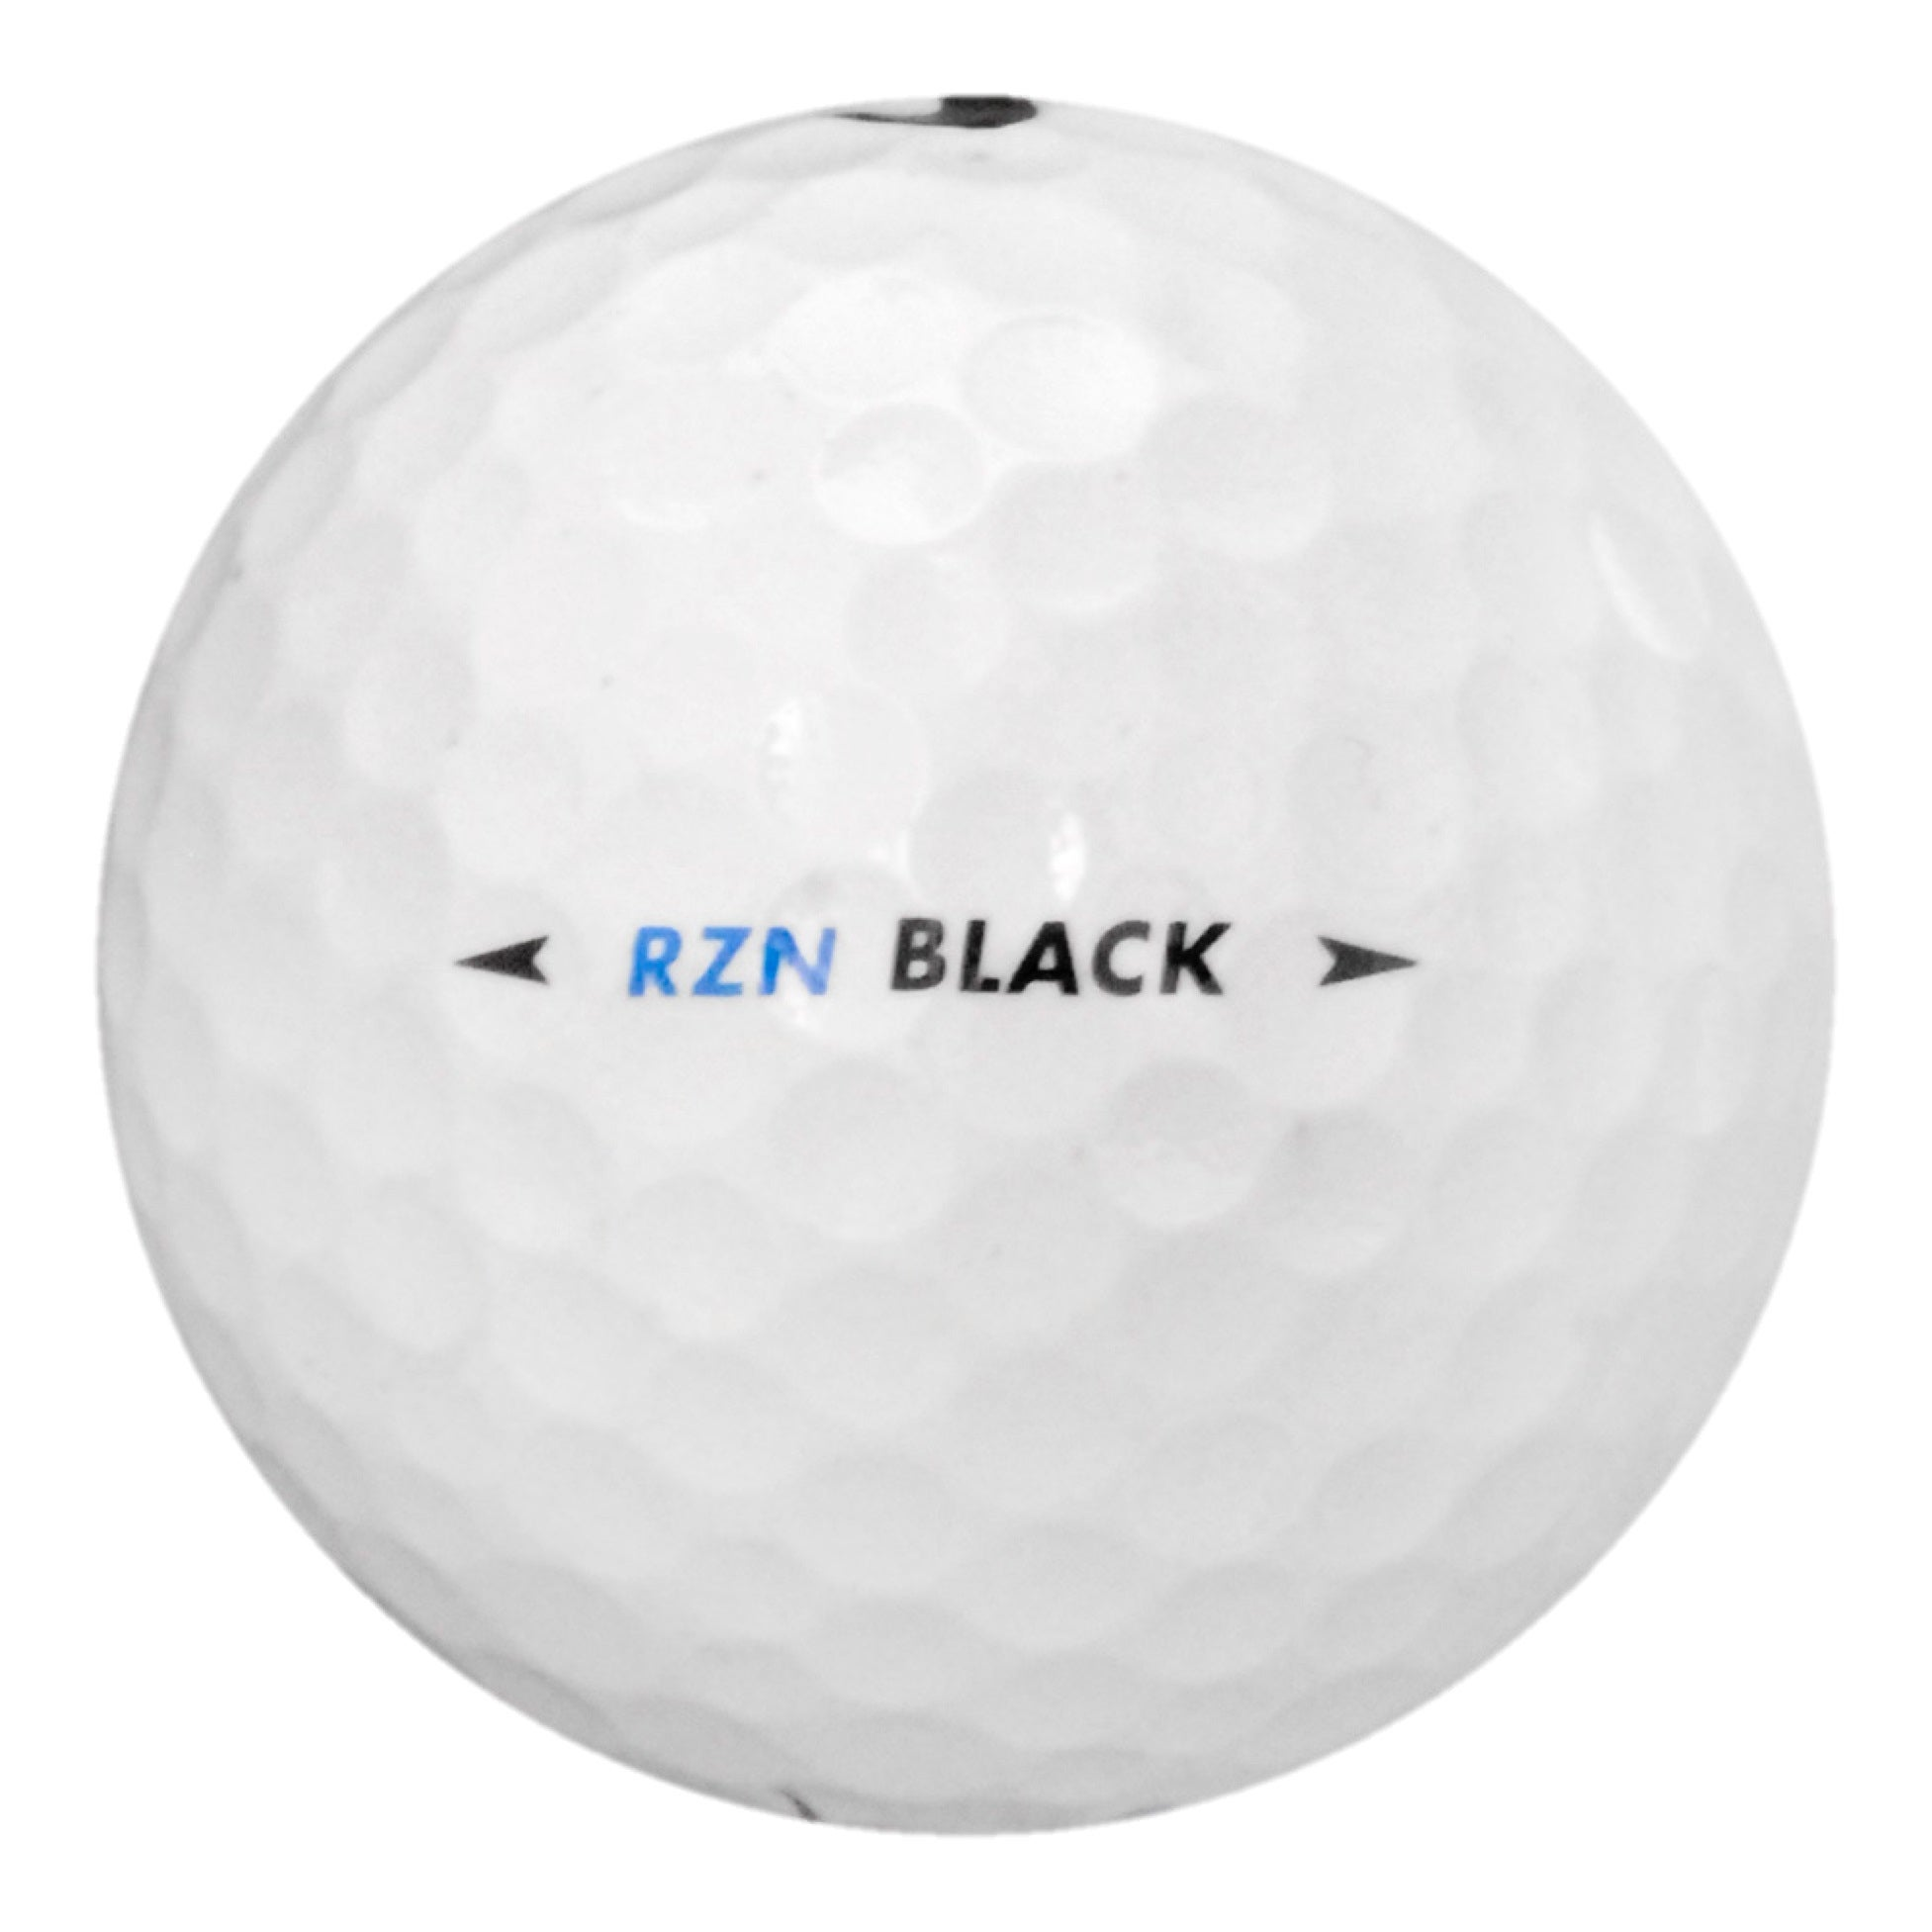 09efea904d163 Shop 36 Nike RZN Black - Mint (AAAAA) Grade - Recycled (Used) Golf Balls -  Free Shipping On Orders Over  45 - Overstock.com - 21803994